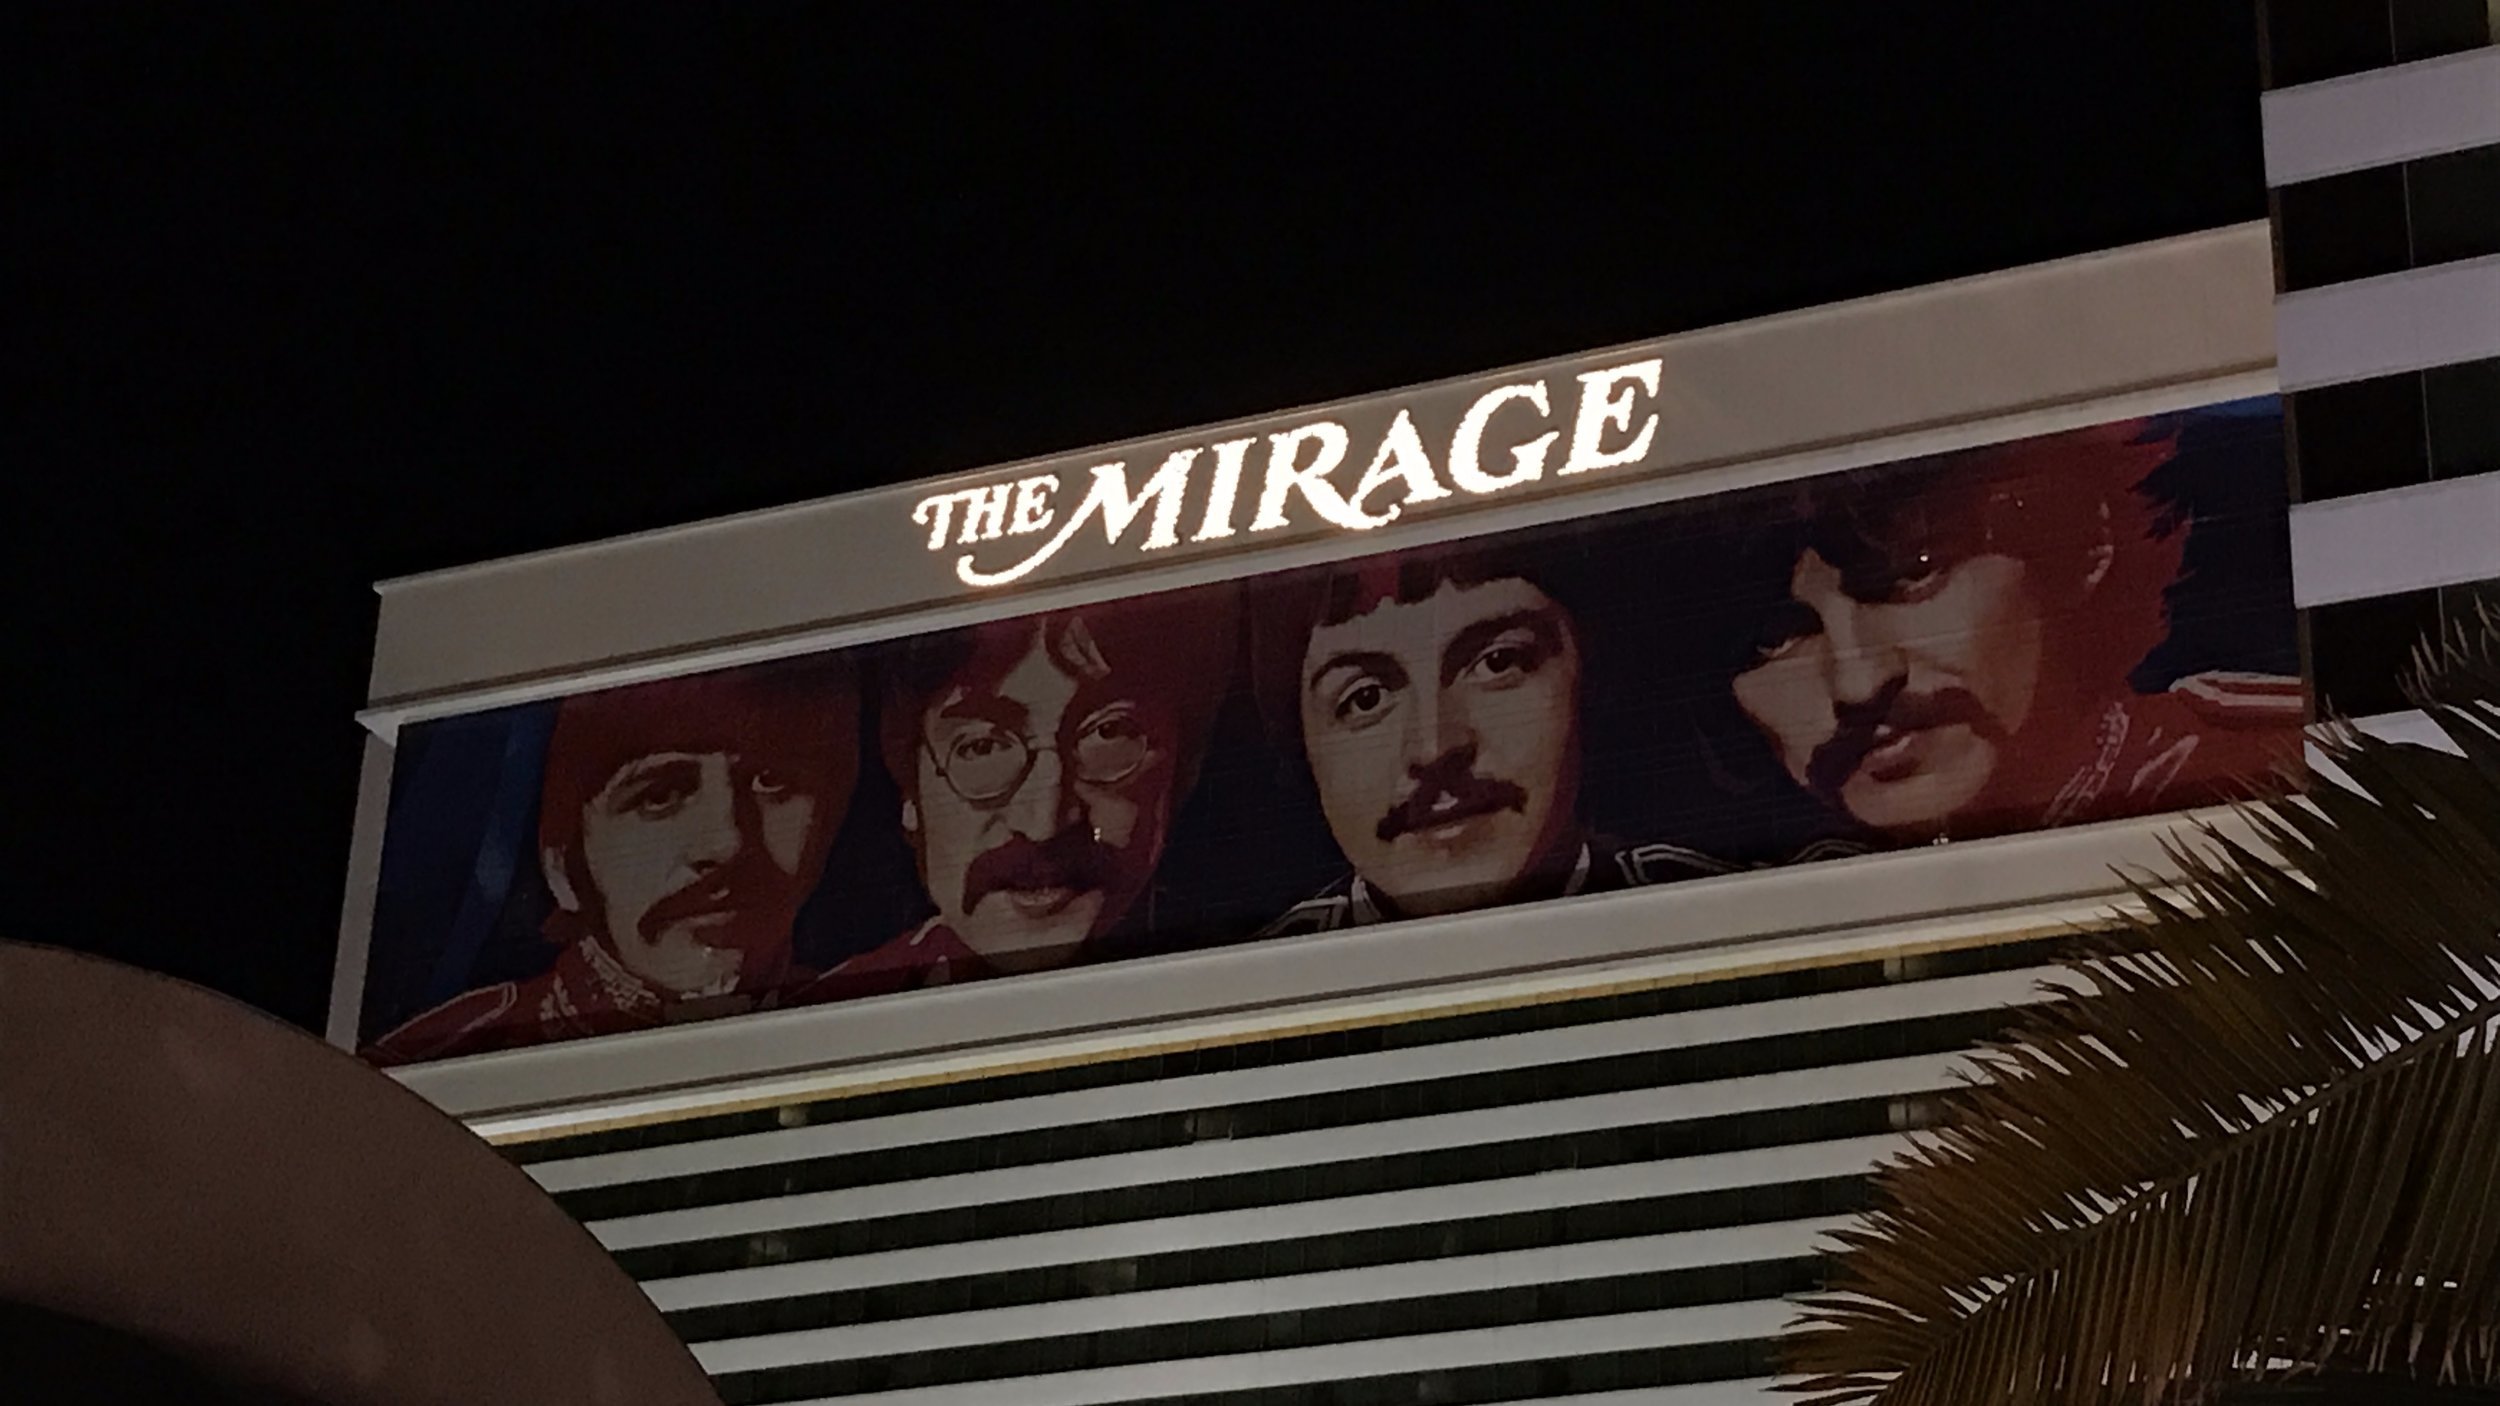 Cirque du Soleil's  LOVE  (The Beatles musical) plays at The Mirage where we stayed but we didn't get to see the show.